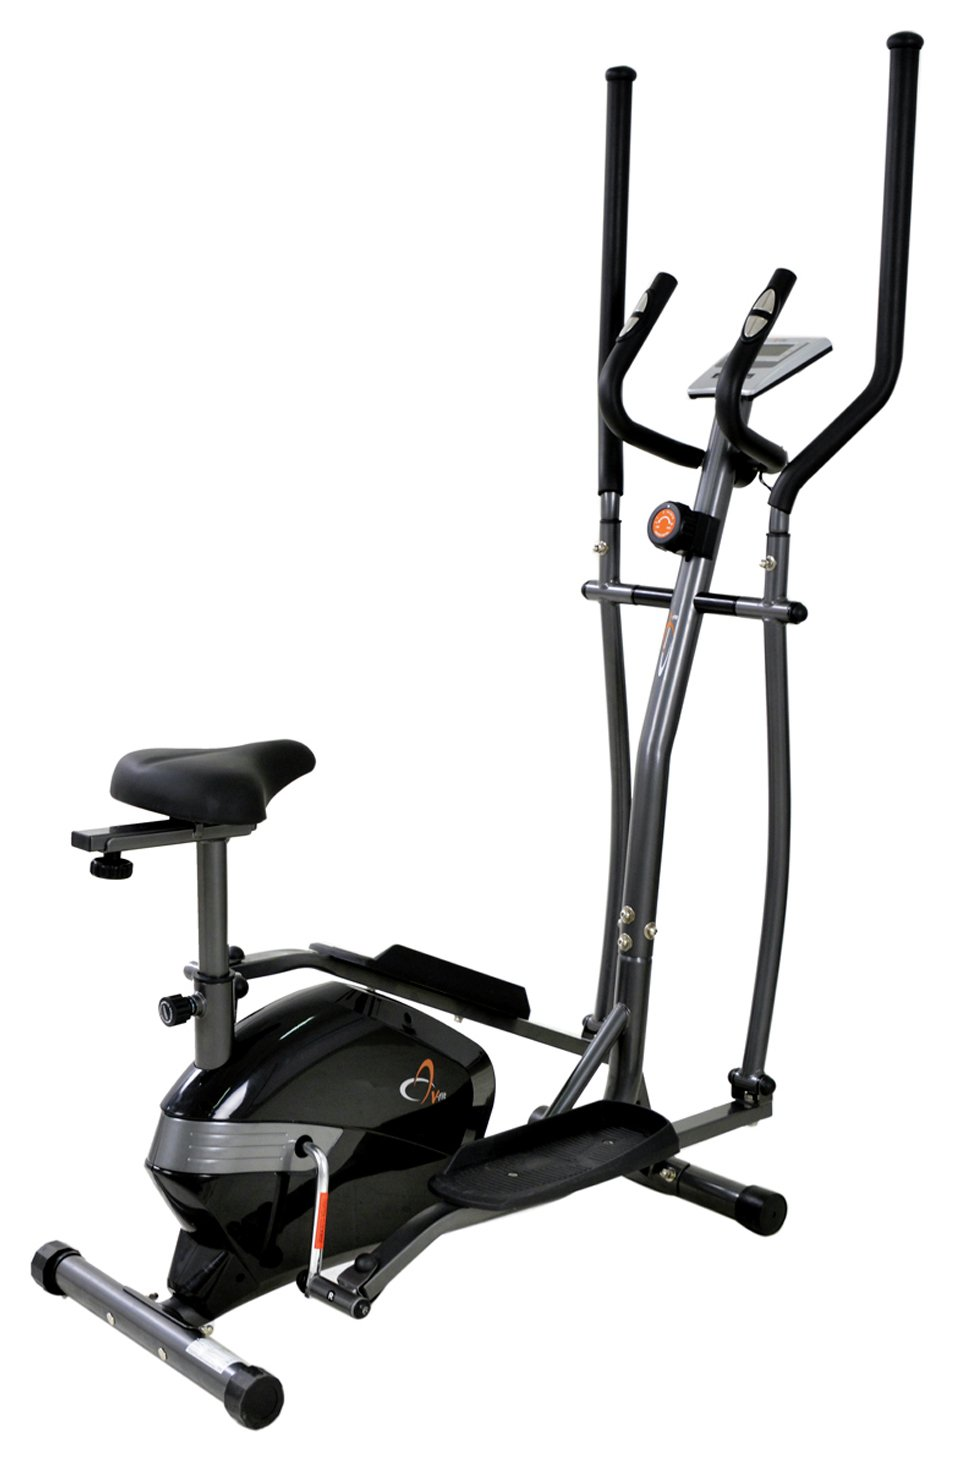 V-fit – CY022 Magnetic 2 in 1 Trainer Cycle